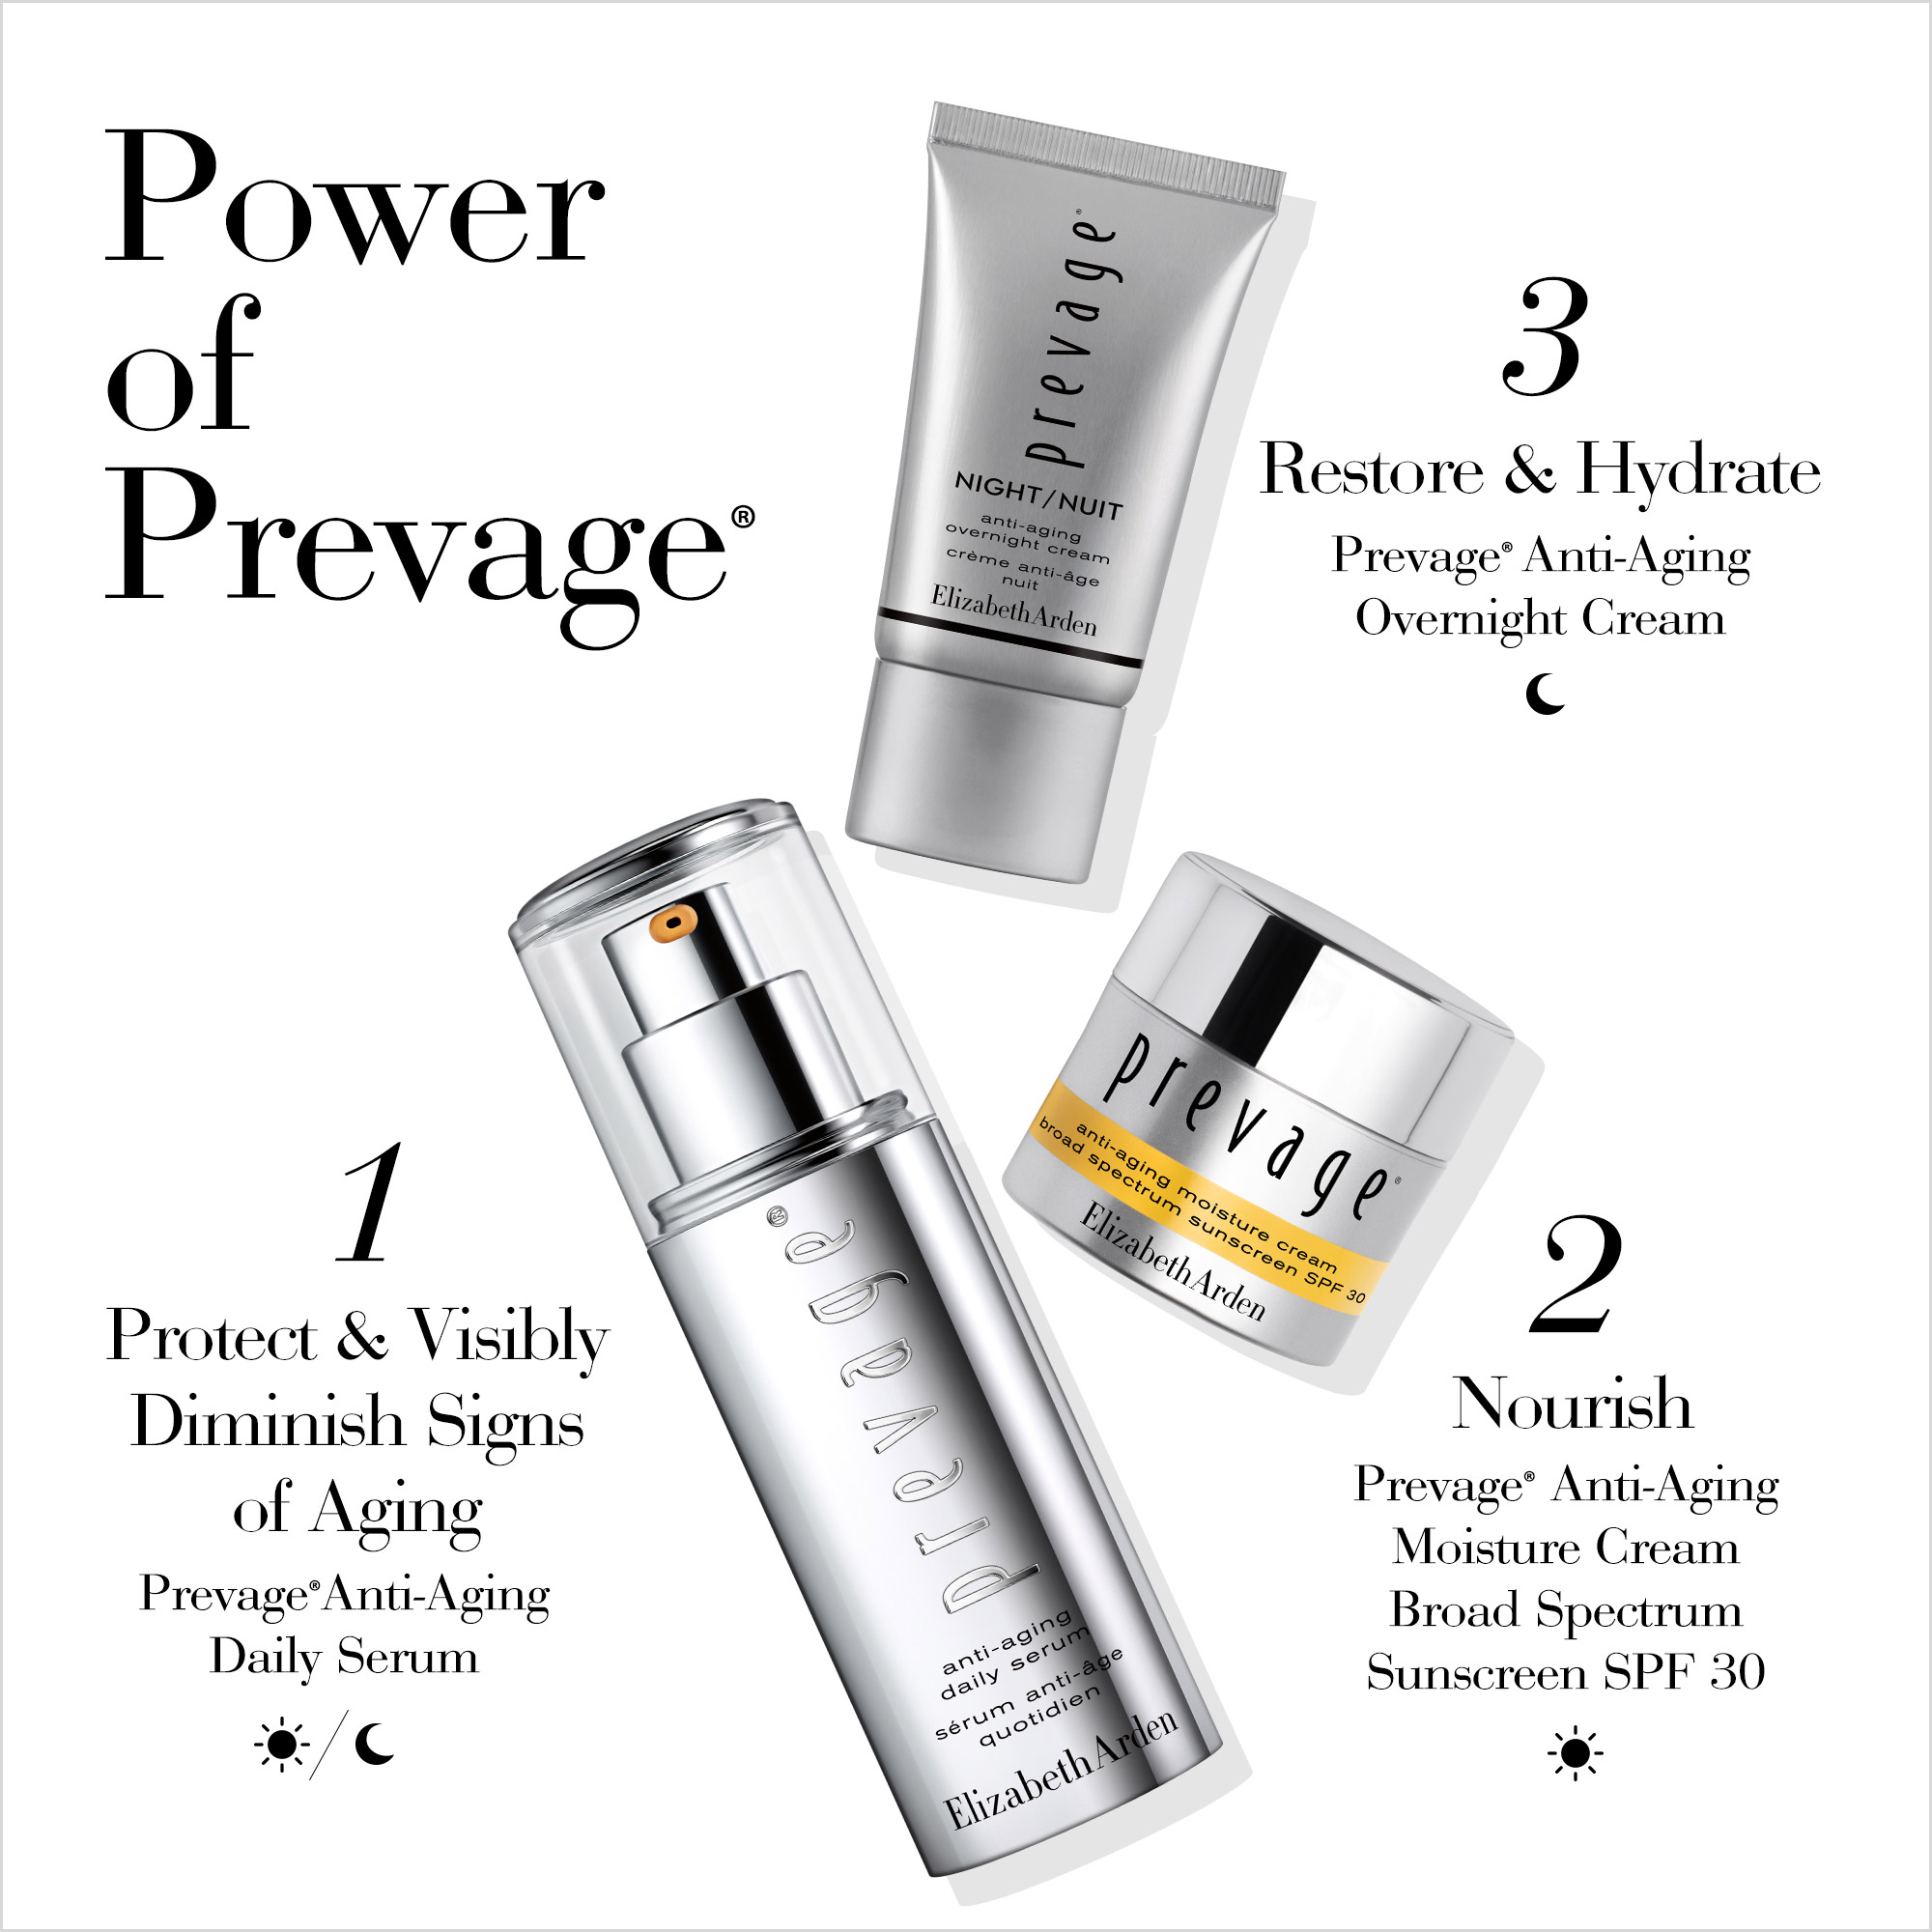 1-Protect and visibly diminish signs of aging with Prevage® Anti-Aging Daily Serum for Day or Night, 2- Nourish with Prevage® Anti-Aging Moisture Cream SPF30 for Day and 3- Restore and Hydrate with Prevage® Anti-Aging Overnight Cream